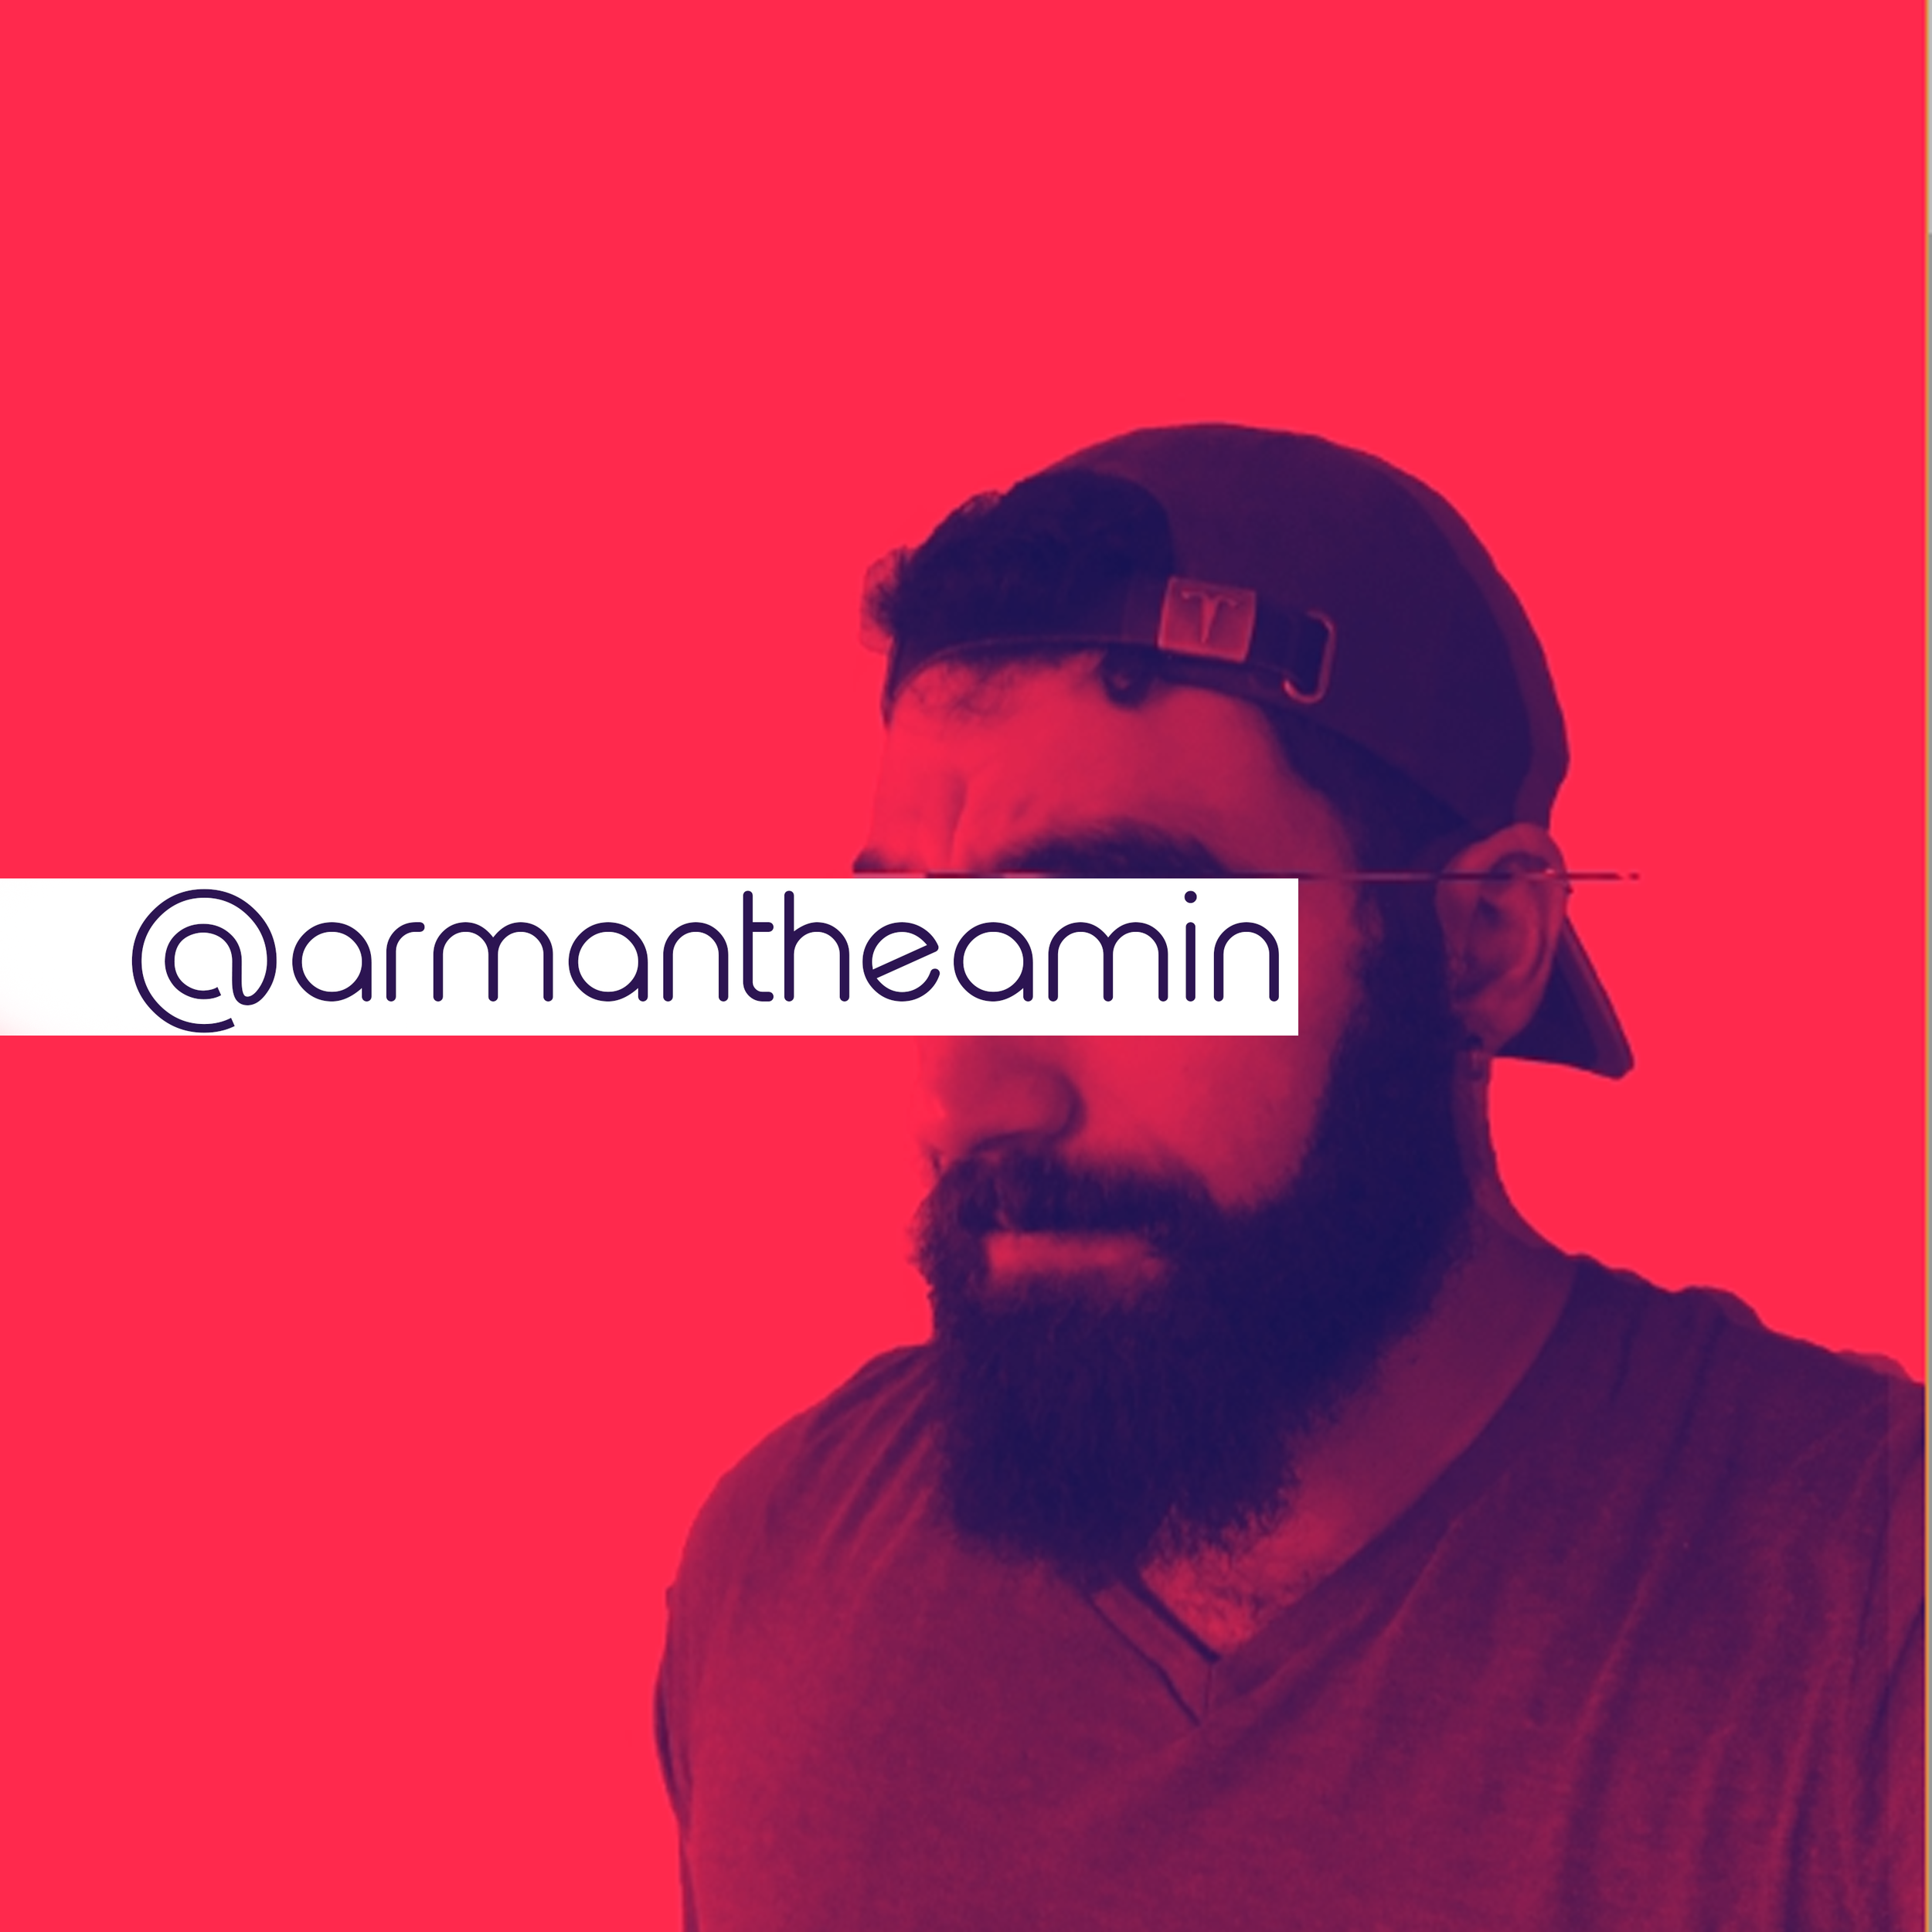 armantheamin.png